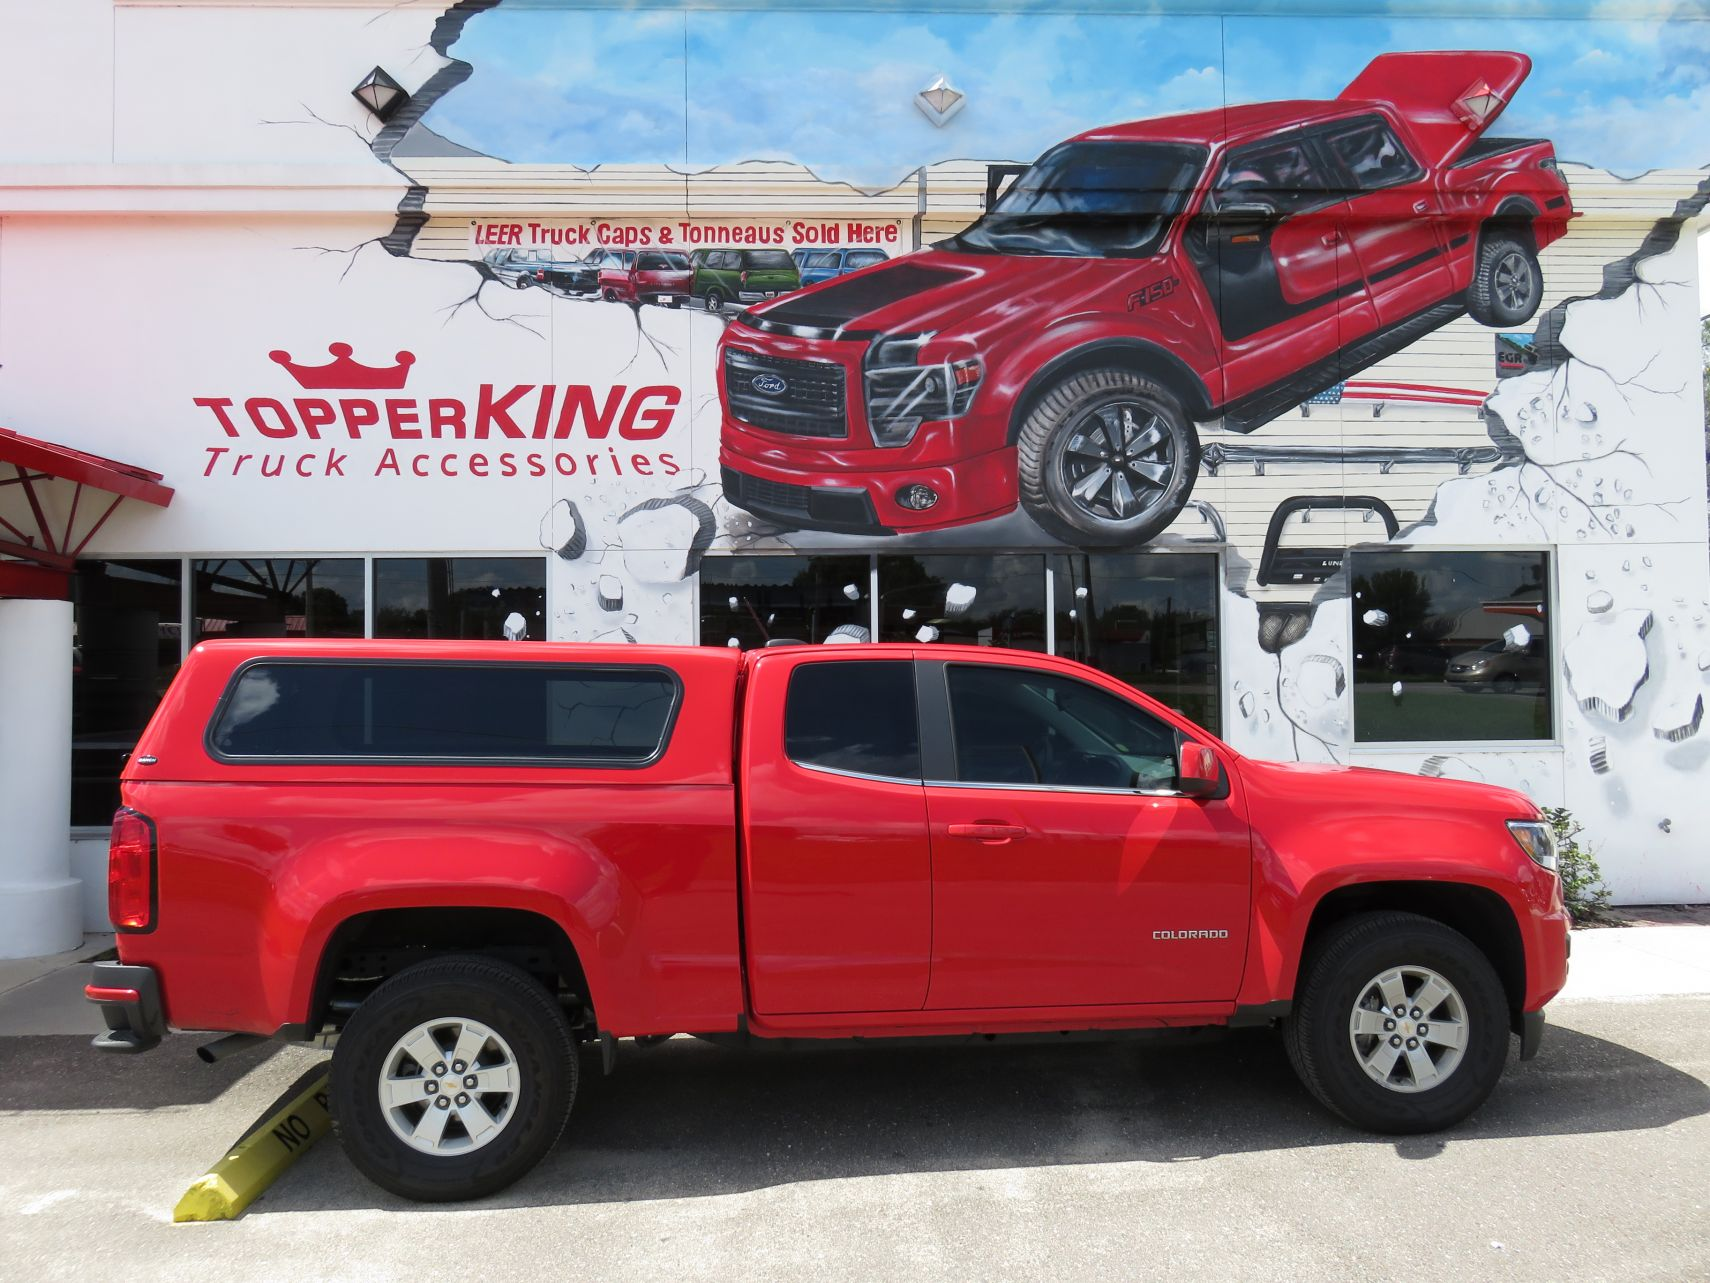 2018 Chevy Colorado Ranch Echo, Tint by TopperKING in Brandon, FL 813-689-2449 or Clearwater, FL 727-530-9066. Call today to start on your truck!